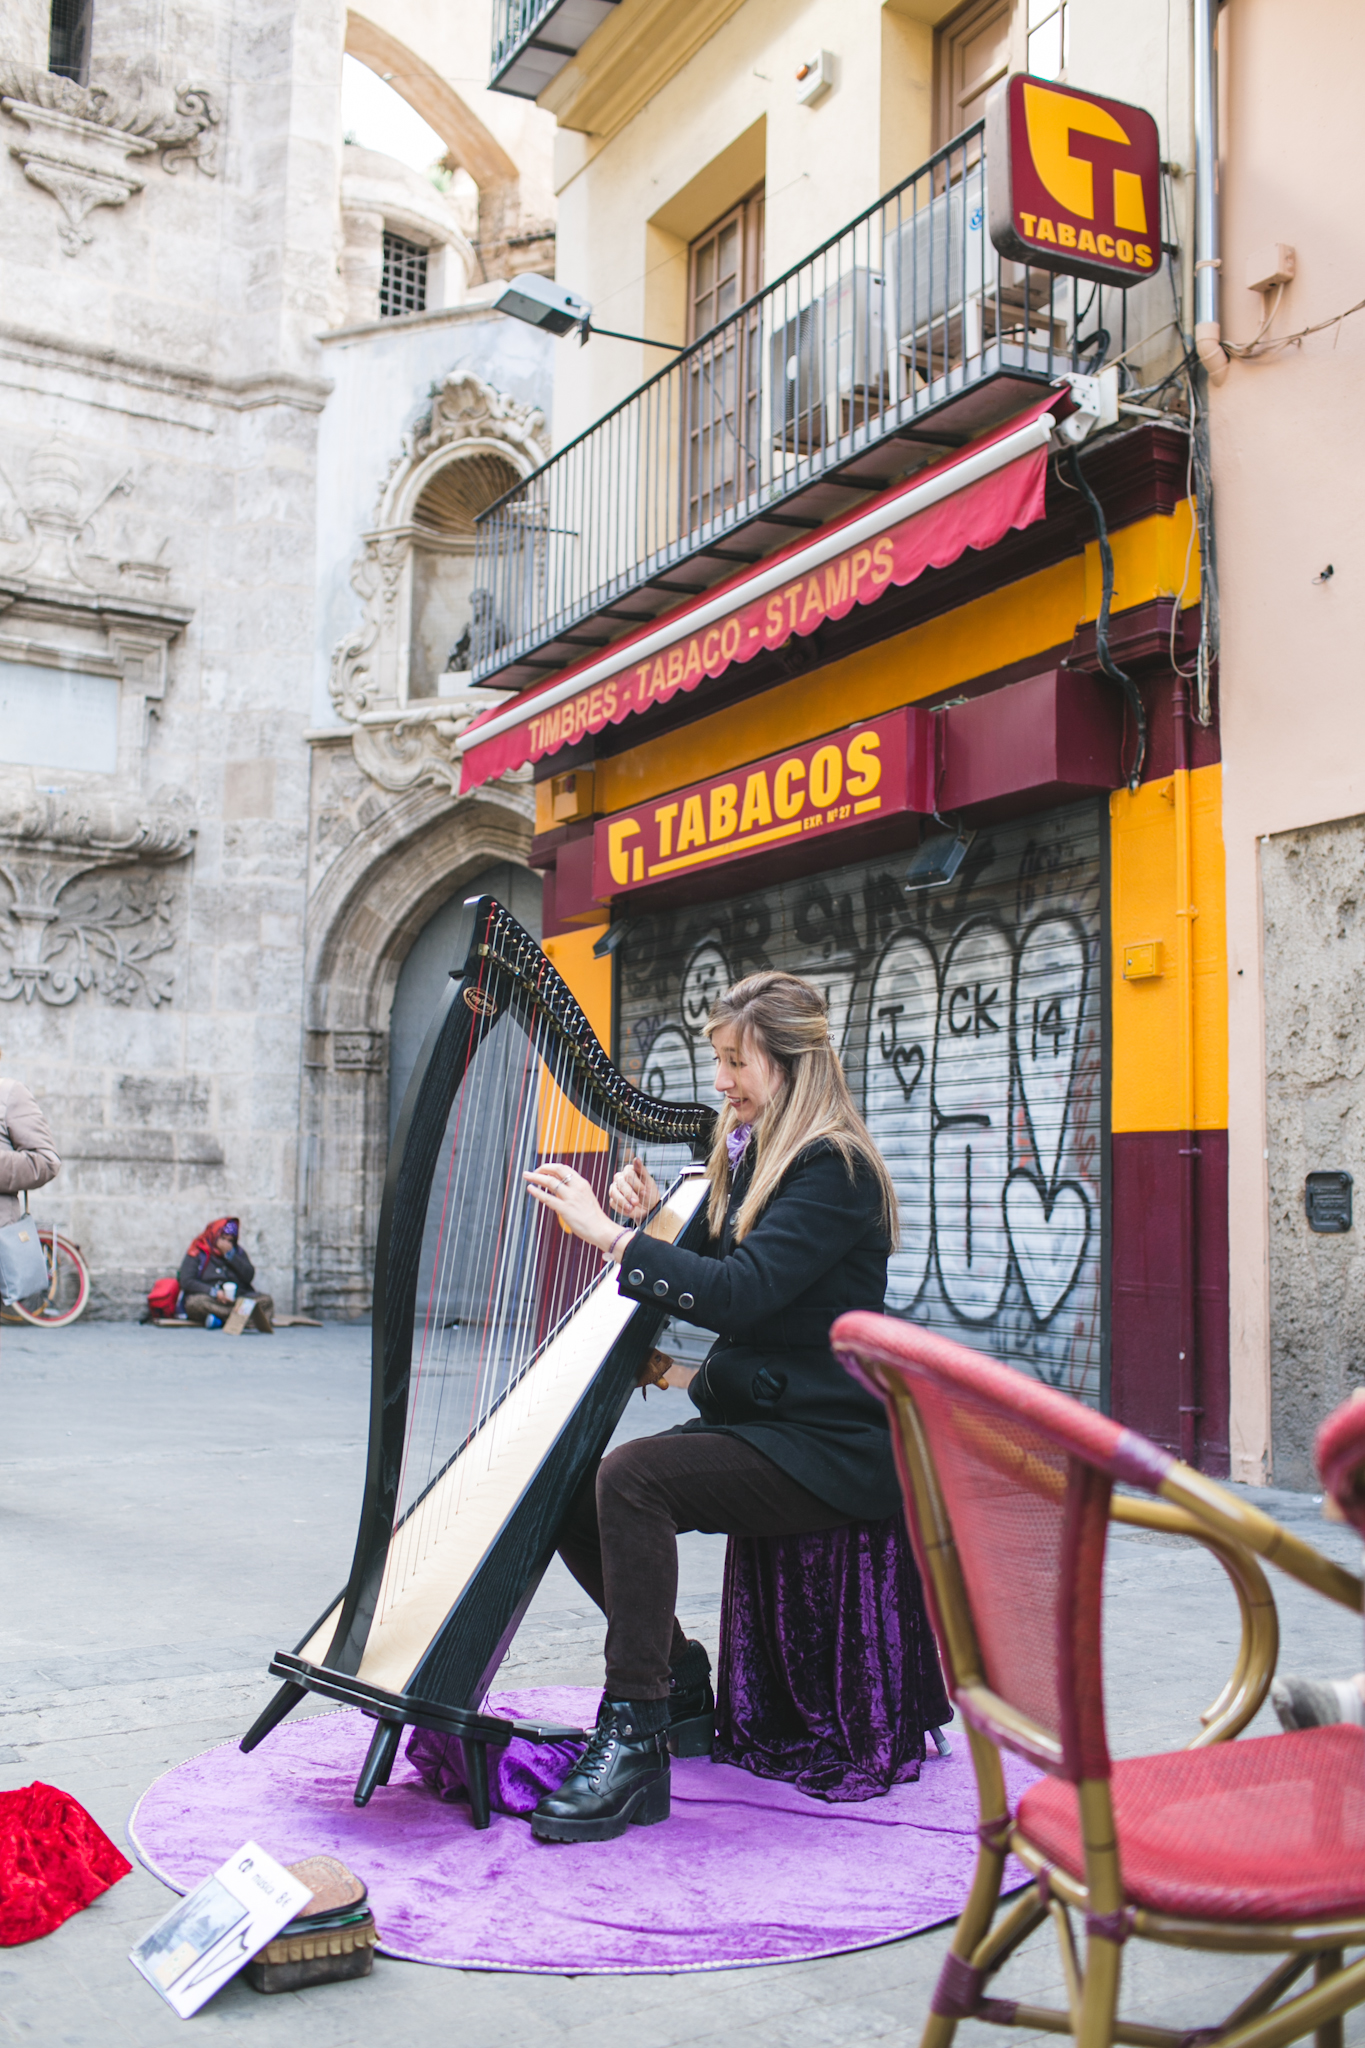 But the ambiance and scenery were on point! This talented harpist played the Game of Thrones song and I about flipped!